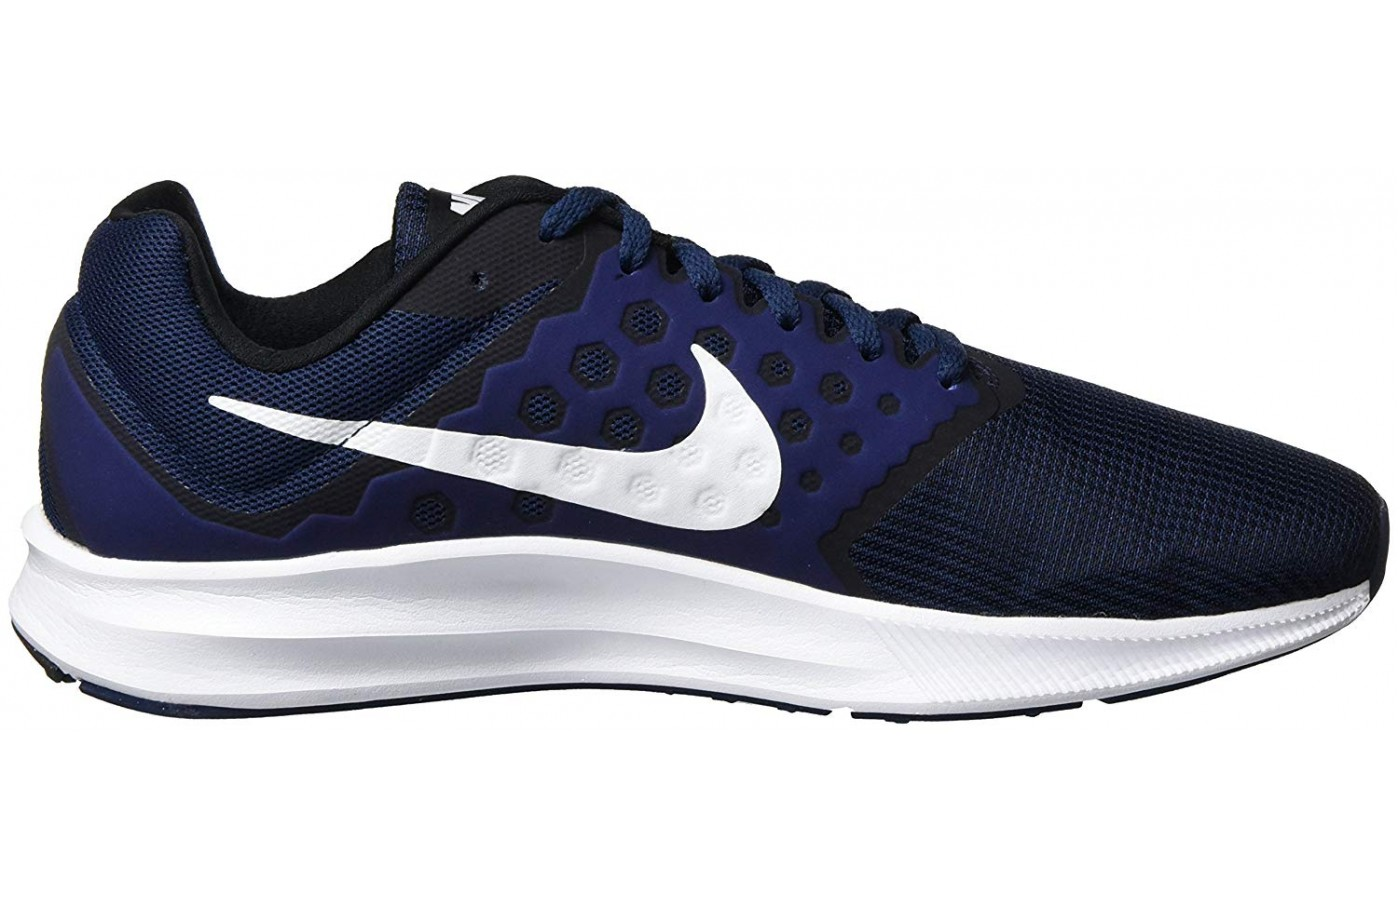 The Downshifter 7 embodies the classic Nike look.